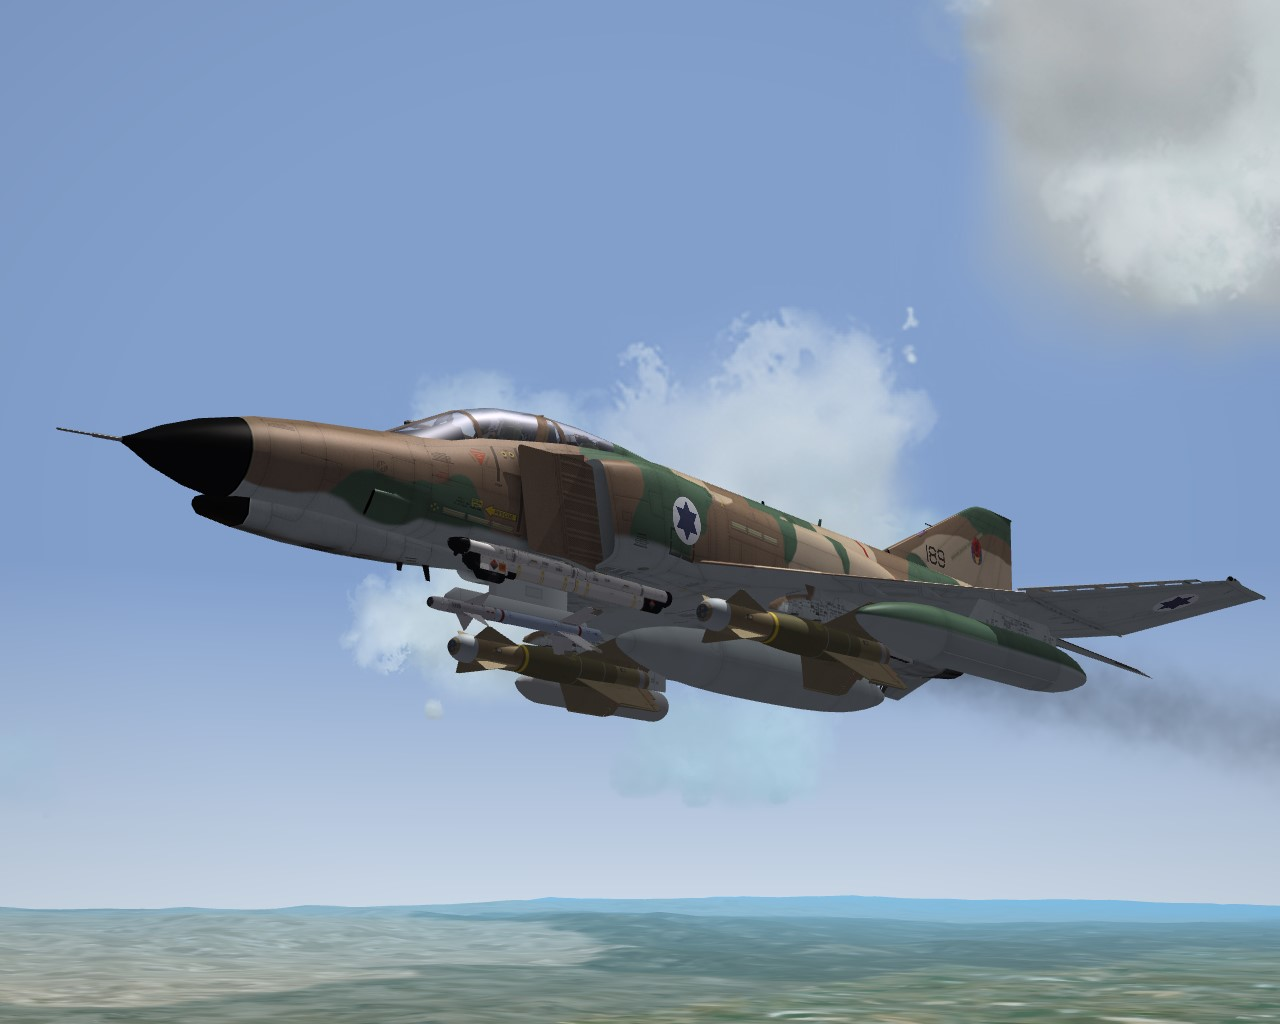 F-4E_78 Kurnass weapons mod